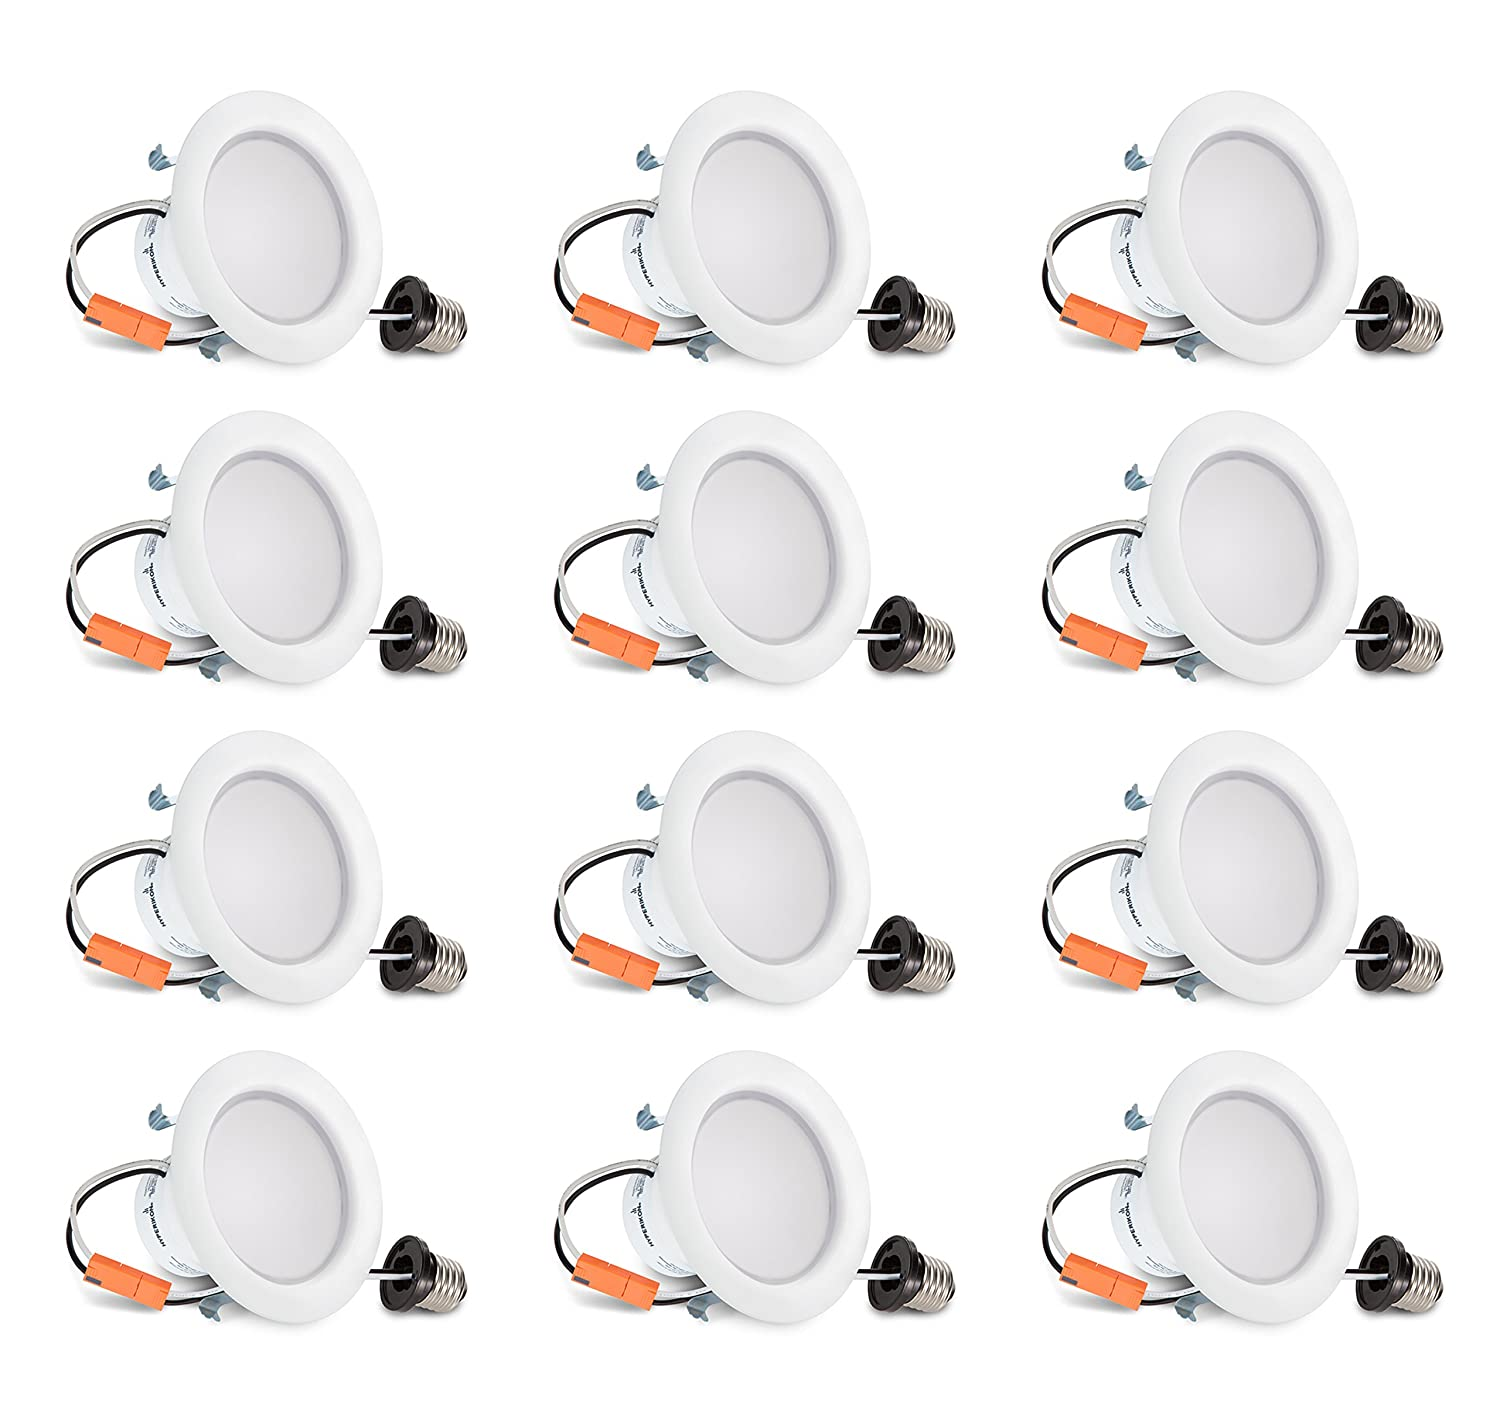 Hyperikon 4 Inch LED Recessed Lighting Dimmable Downlight, 9W (65W Equivalent), 4000K, CRI94, Retrofit Lighting Fixture, Great for Cans in Bathroom, Kitchen, Office (12 Pack)